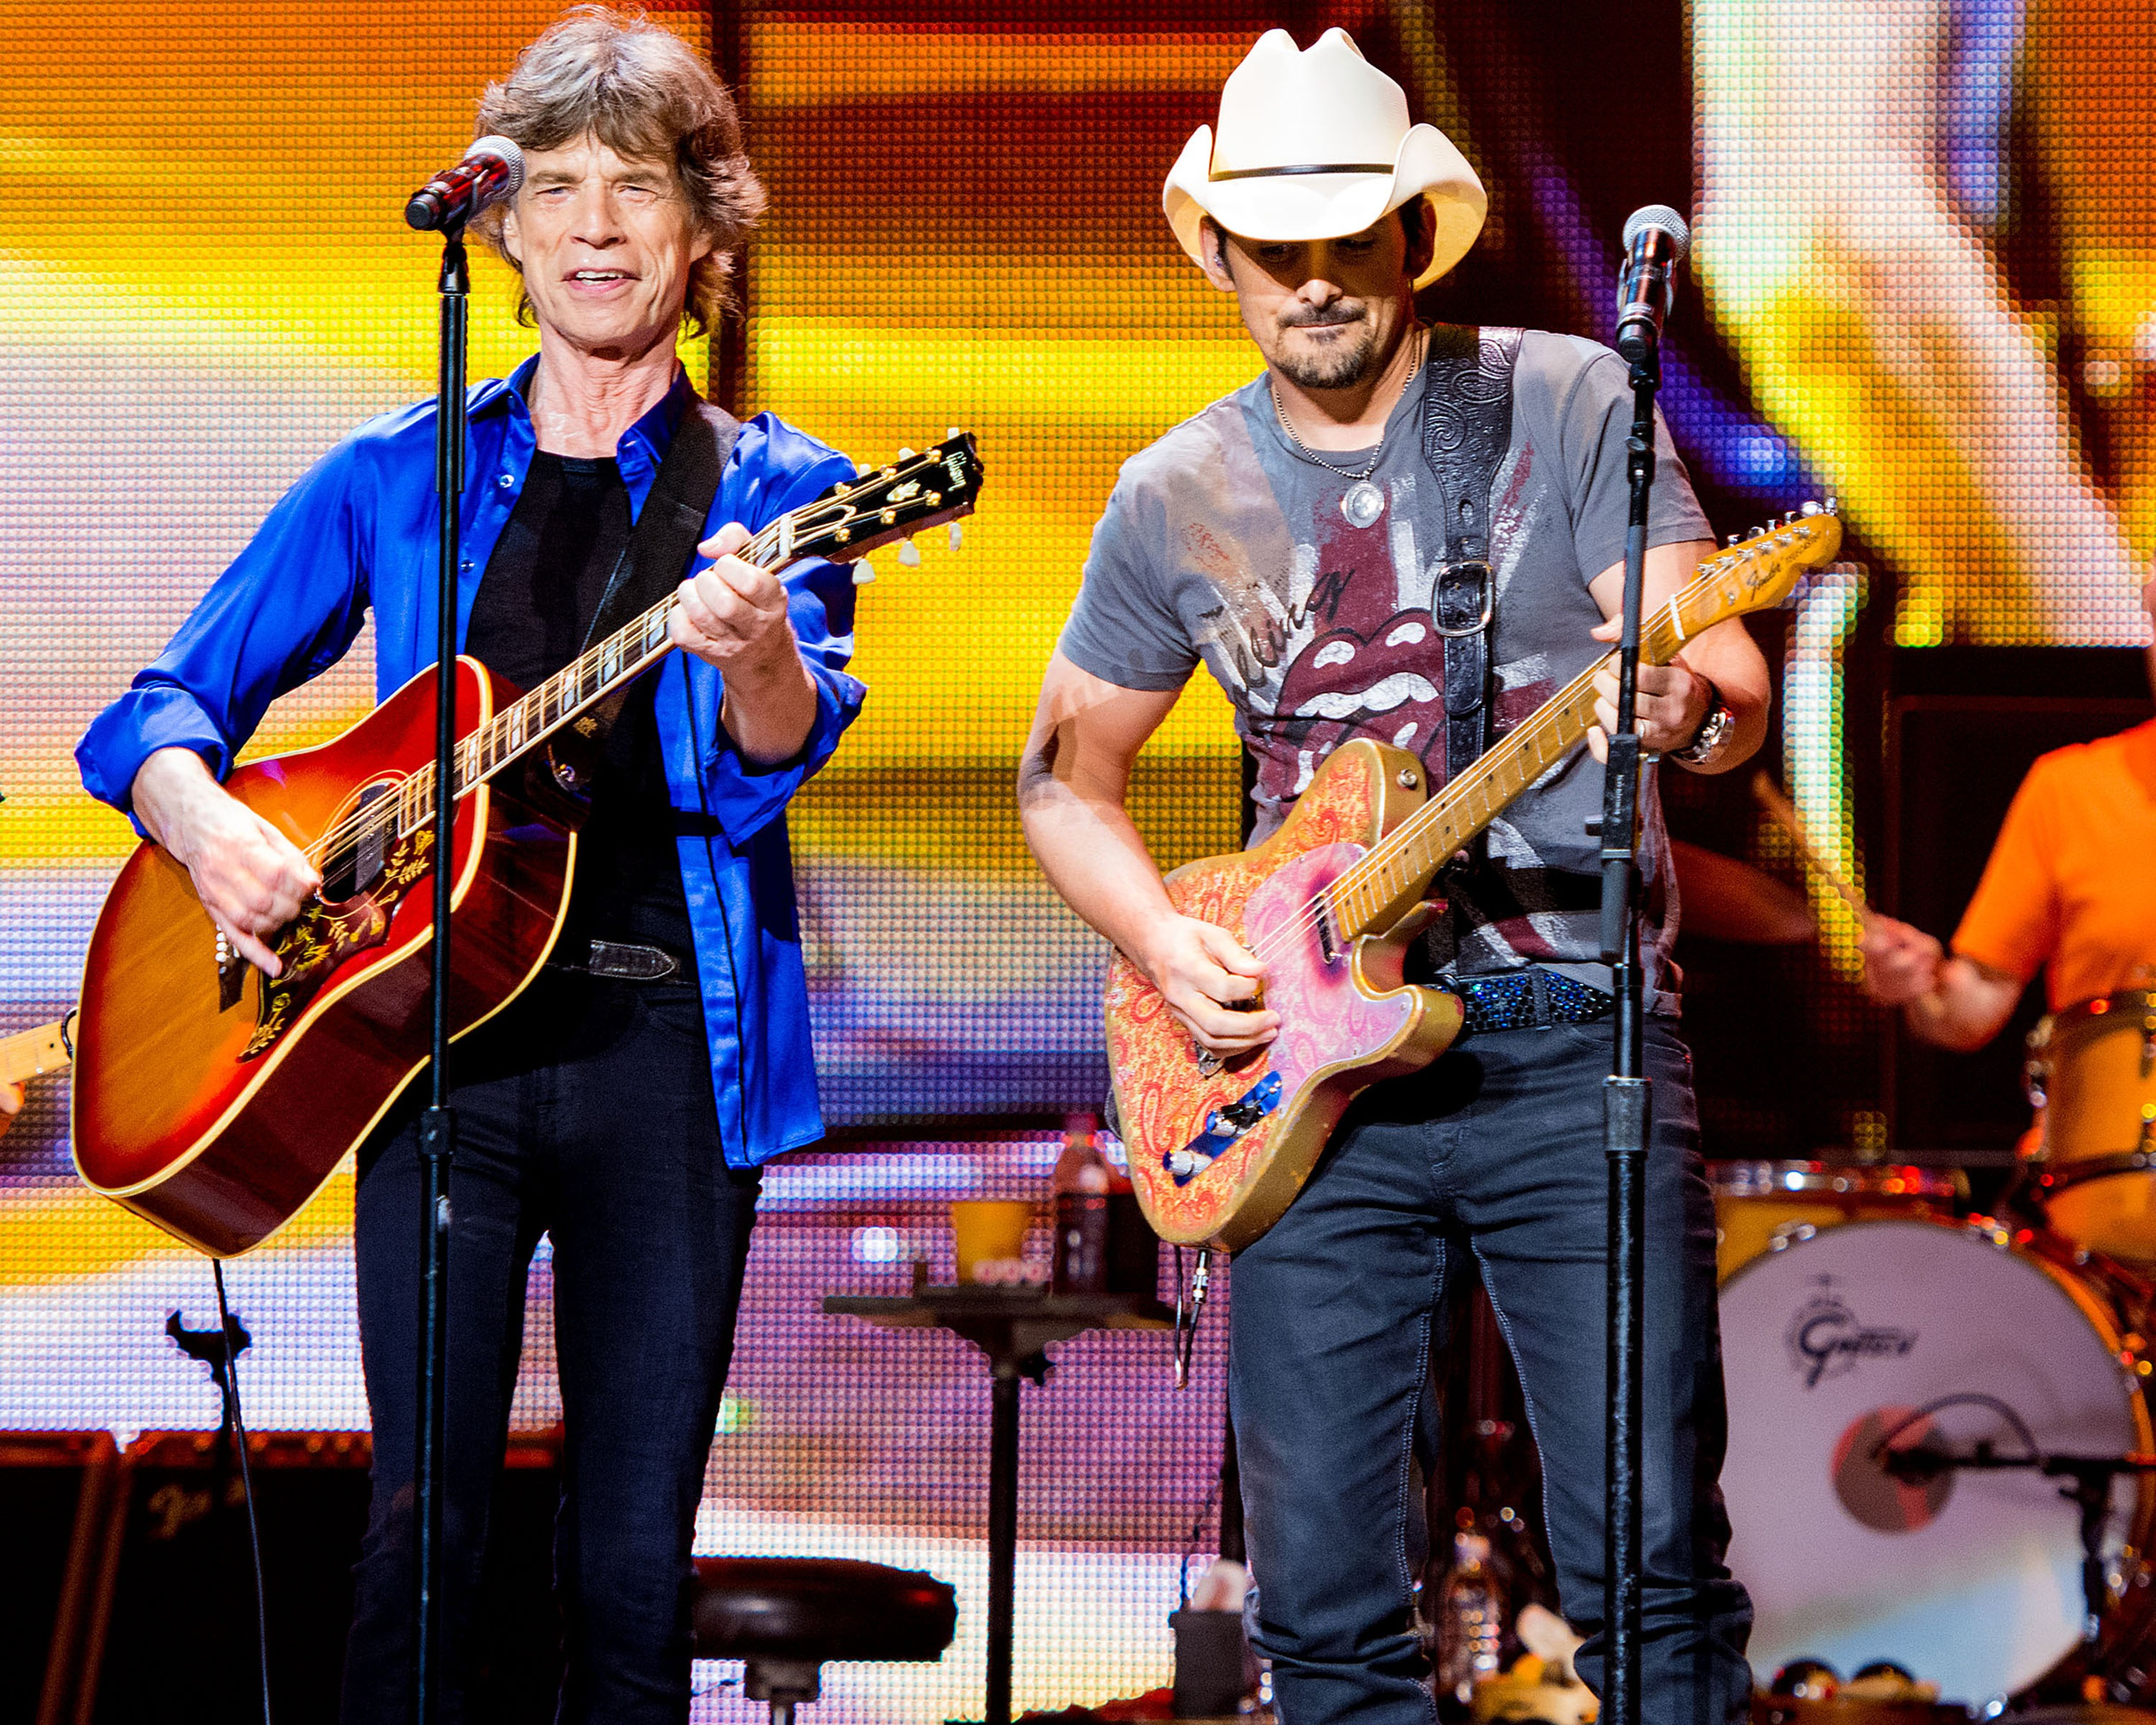 Hear Brad Paisley Join the Rolling Stones for 'Dead Flowers' on New Compilation